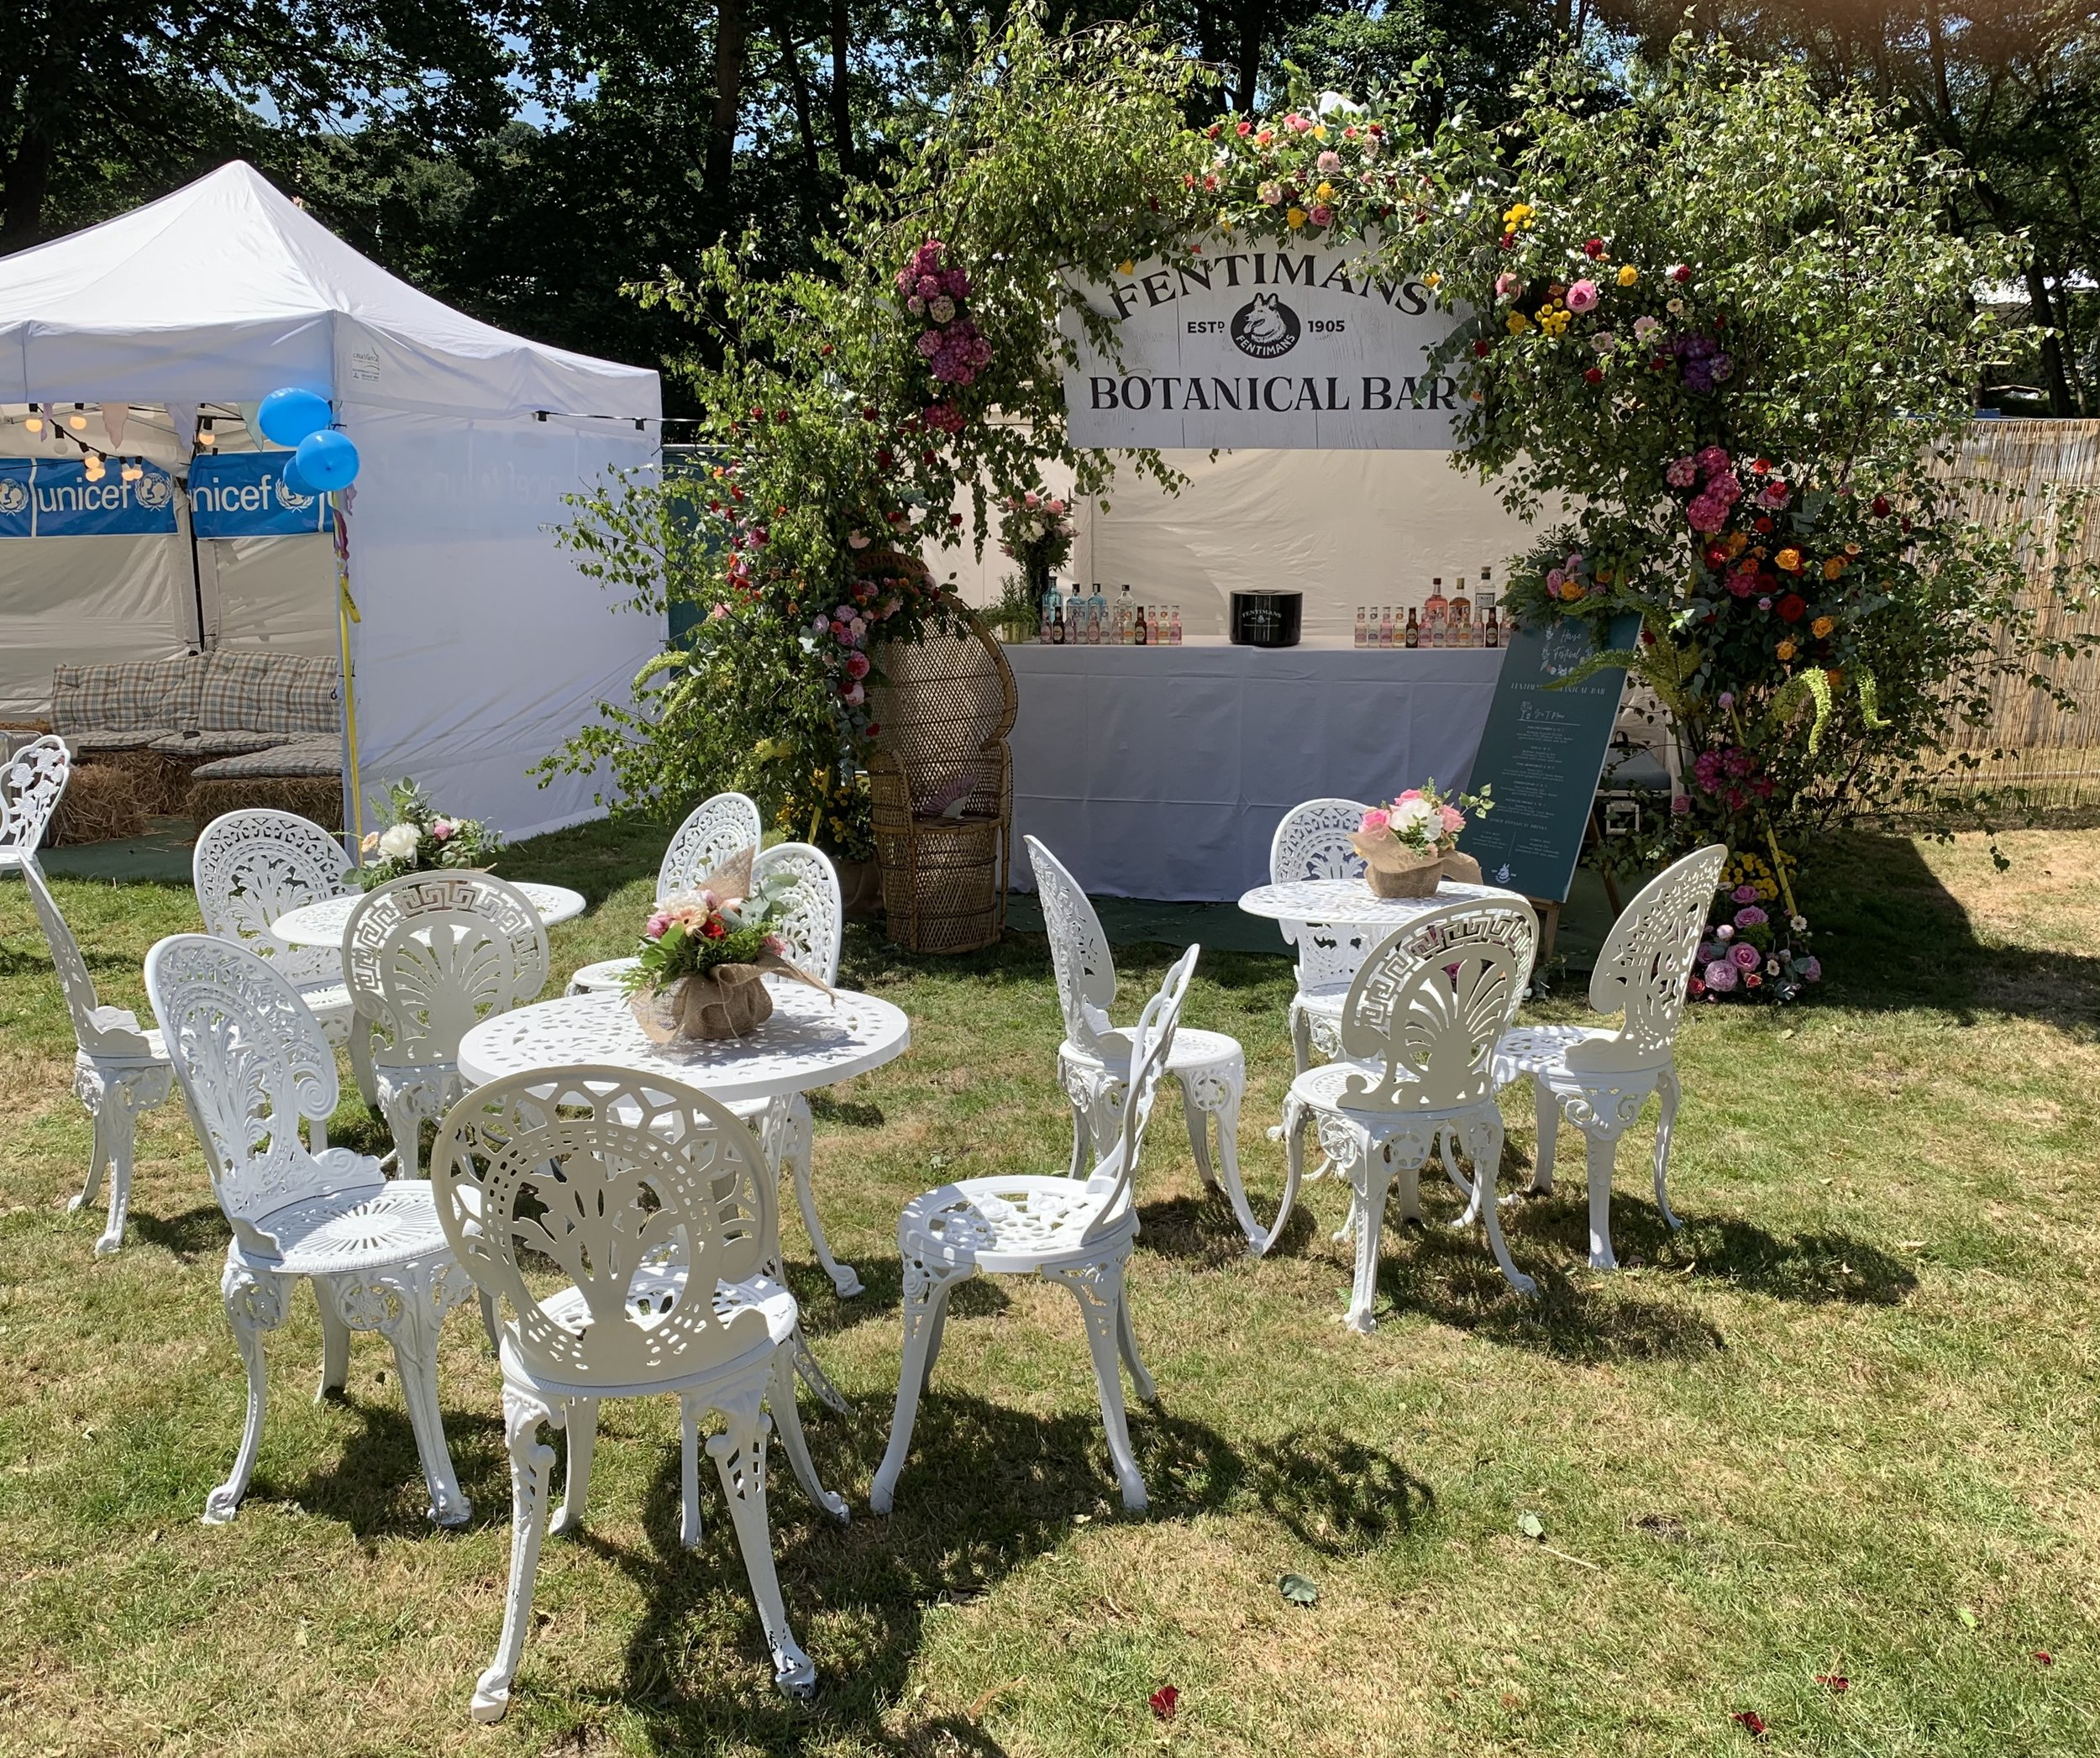 Quirky Group Floral Installation at House Festival for Fentimans